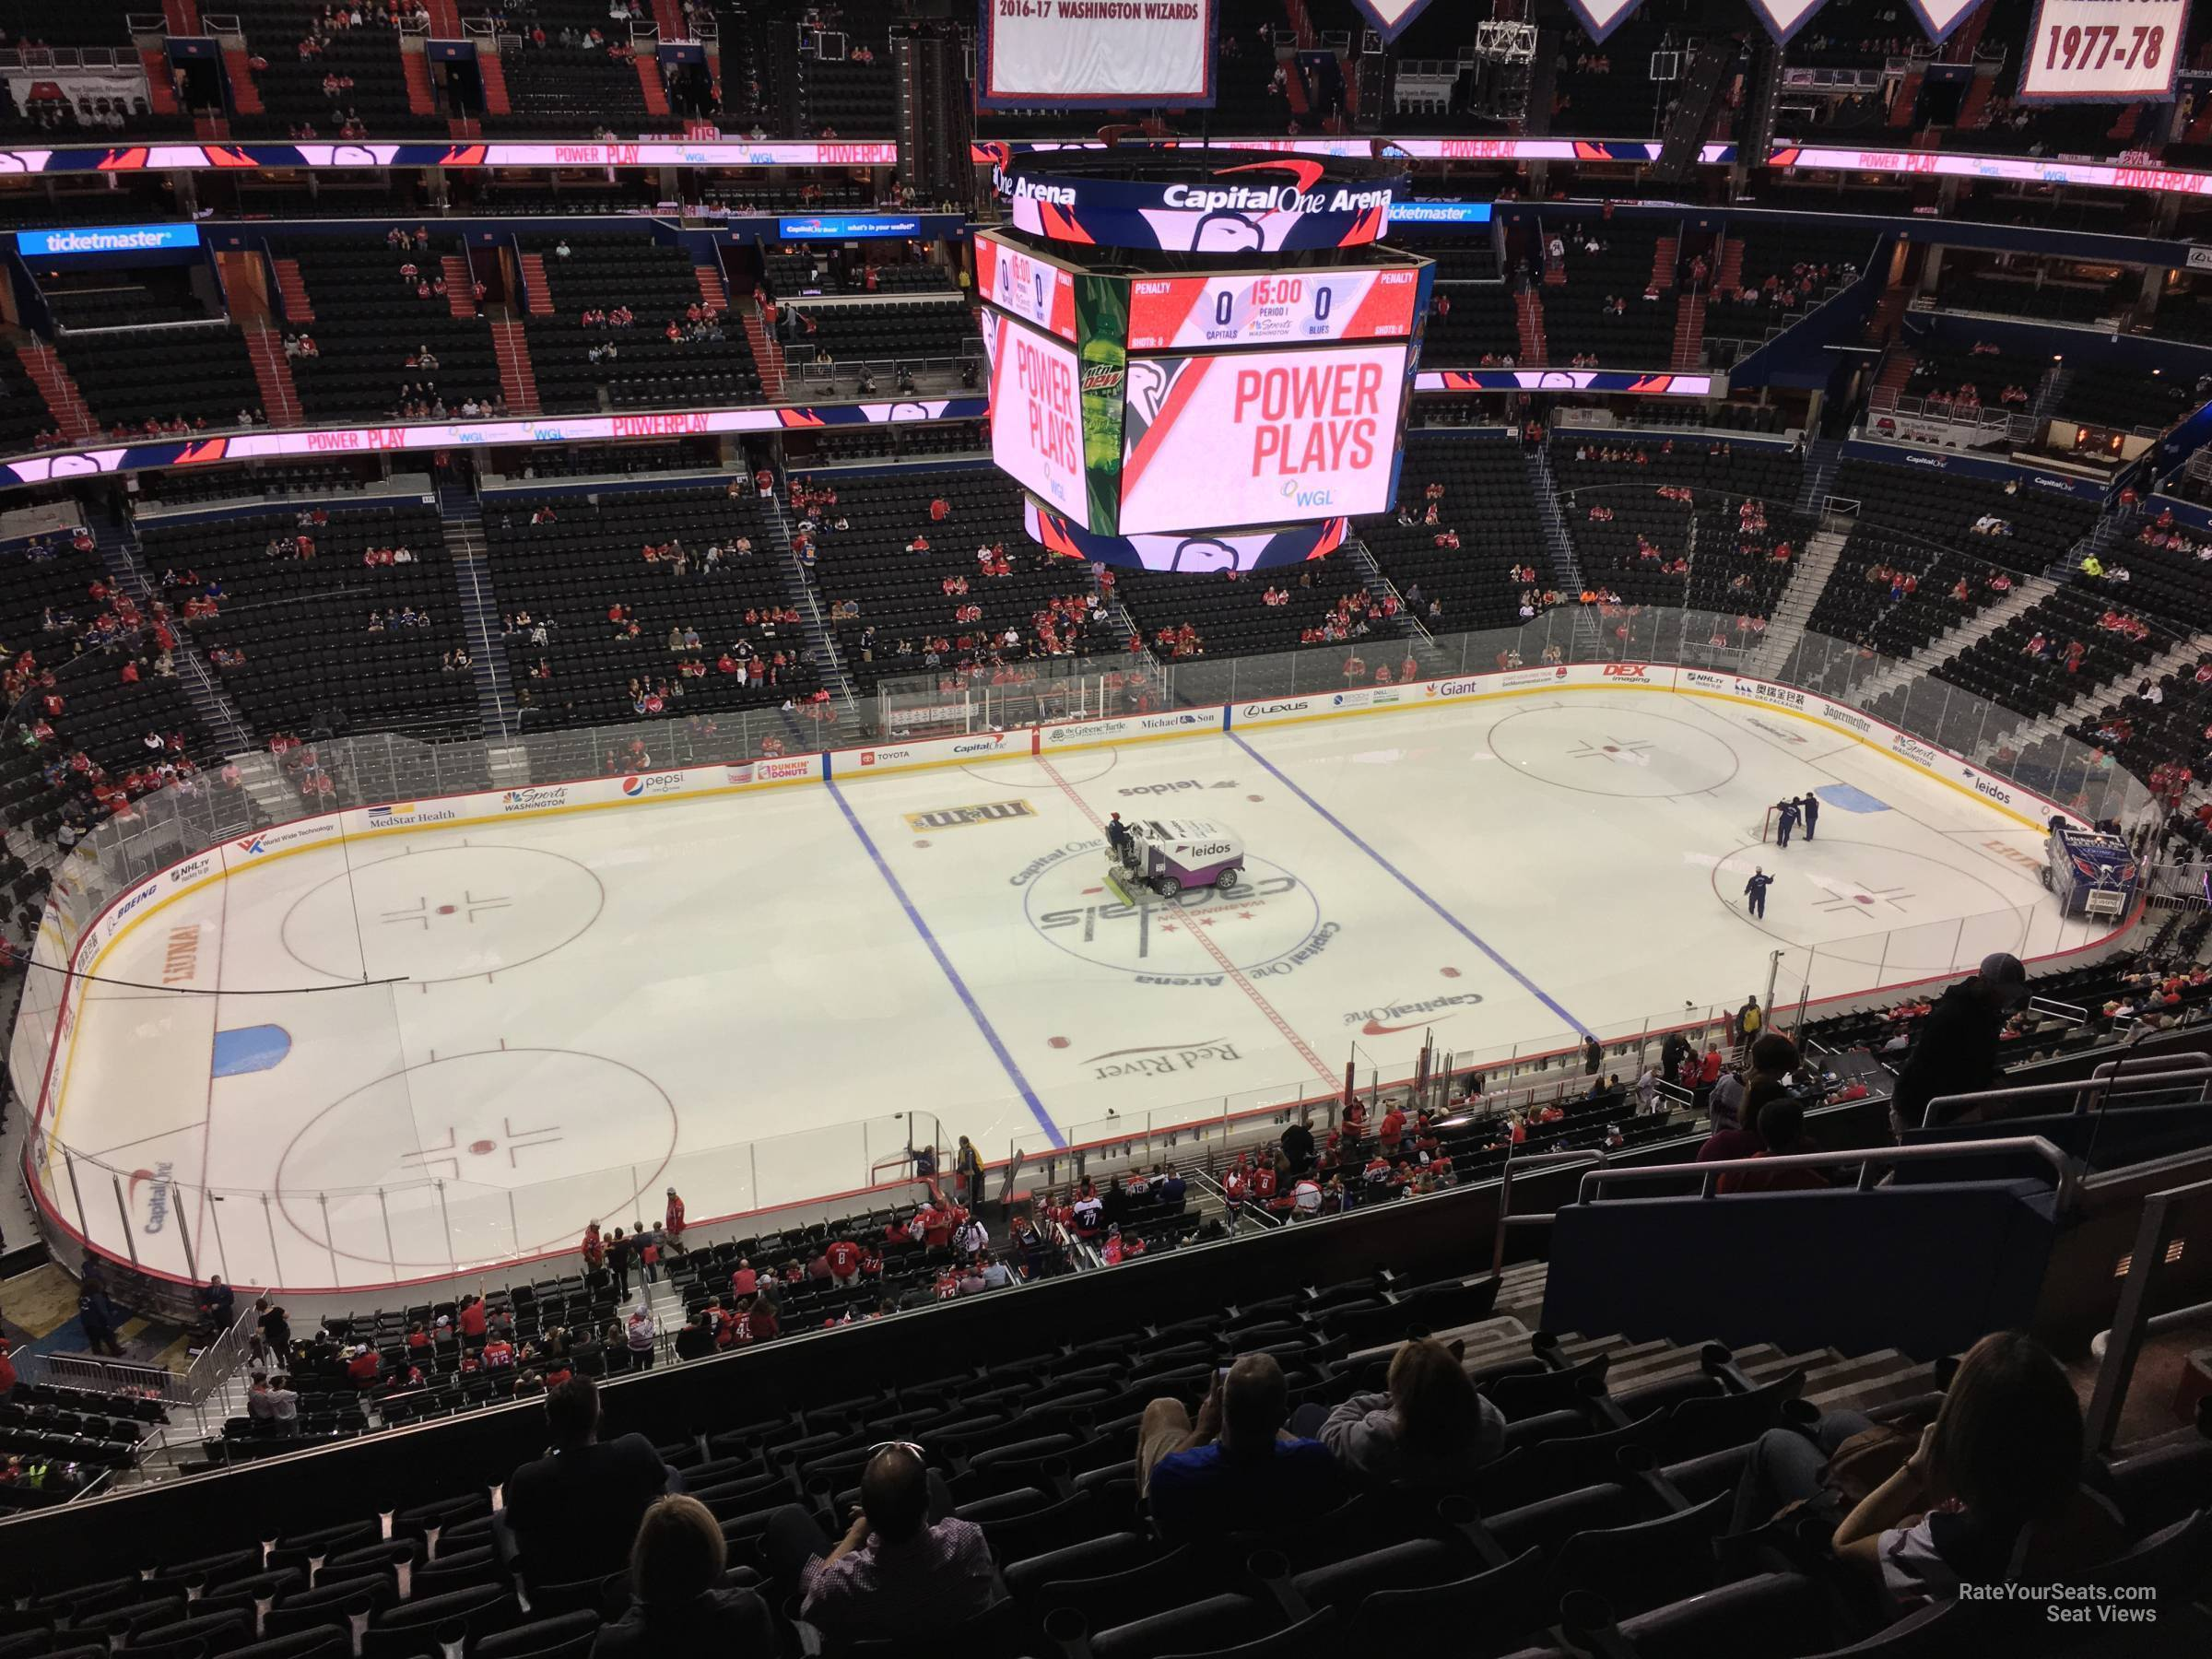 Section 432 seat view